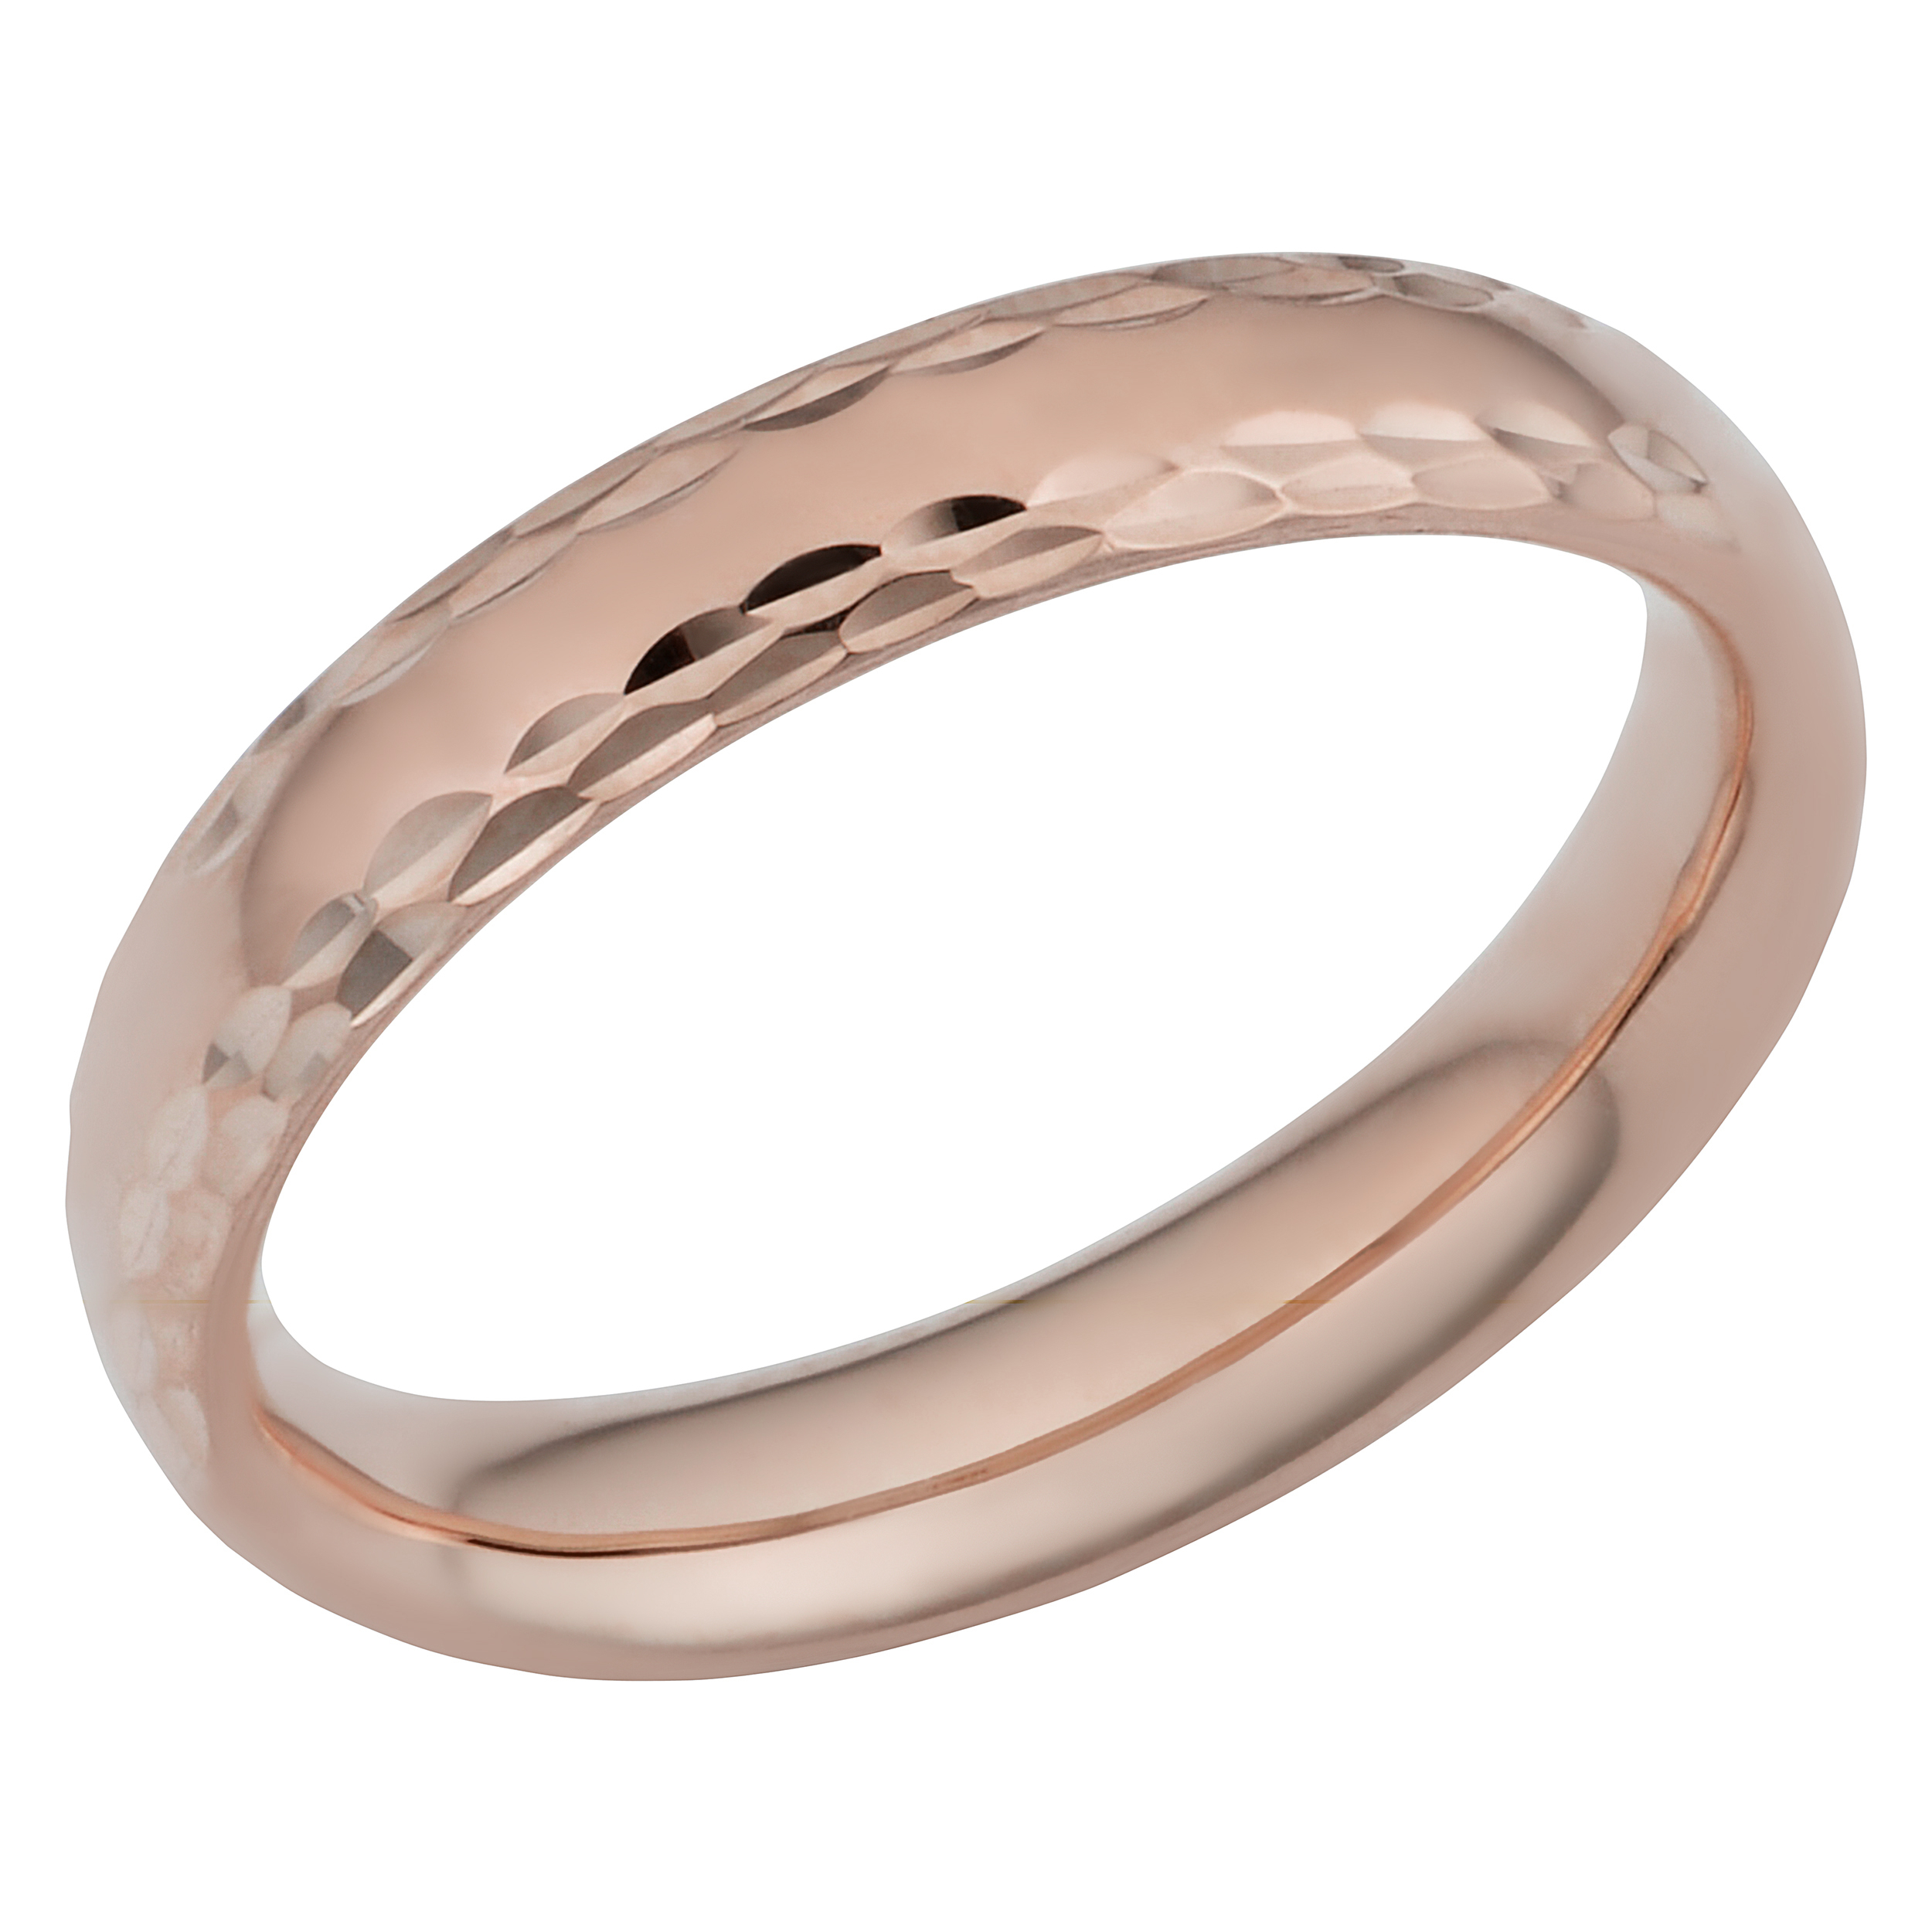 Details About 14K Rose Gold Diamond Cut 4Mm Wide Hollow Wedding Band Ring Regarding 2018 Wide Diamond Wedding Bands (Gallery 24 of 25)